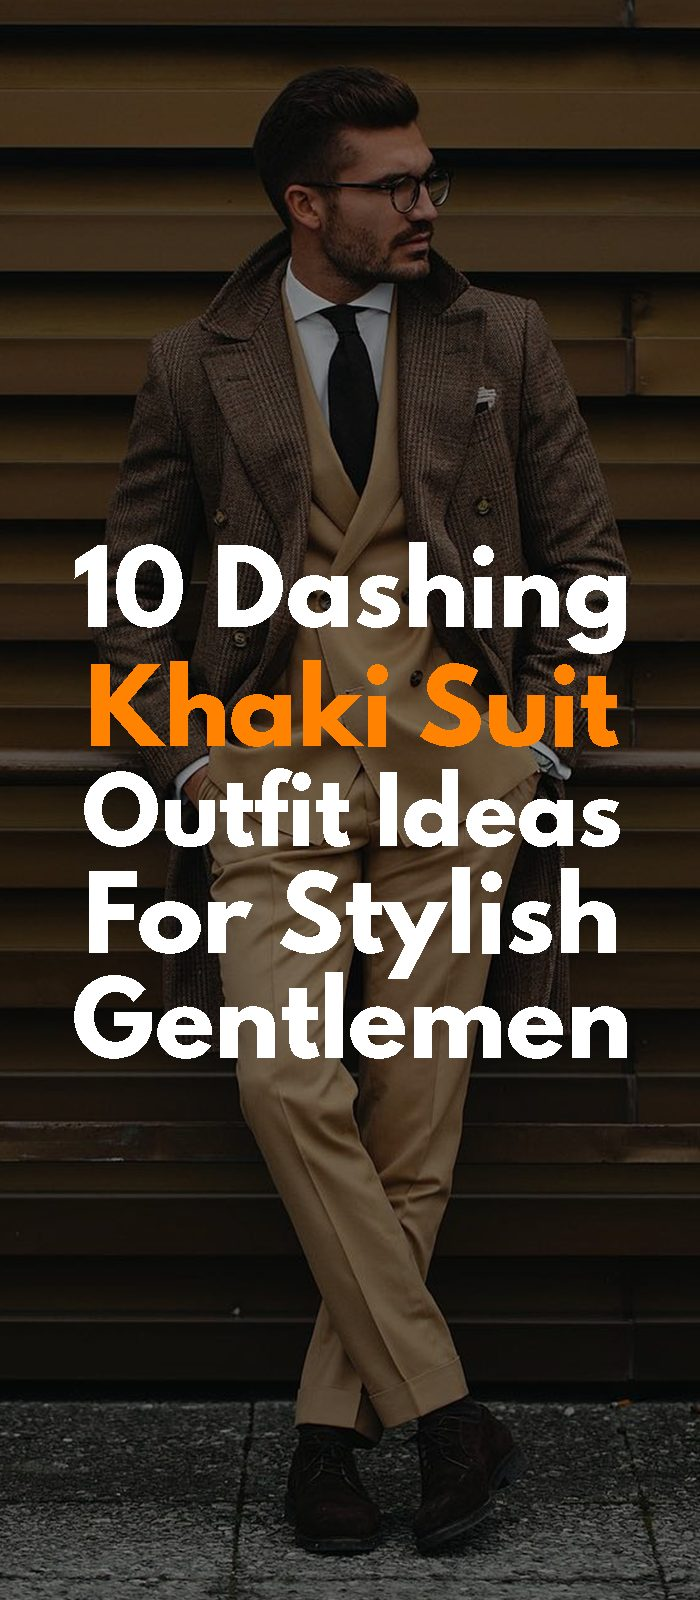 10 Dashing Khaki Suit Outfit Ideas For Stylish Gentlemen